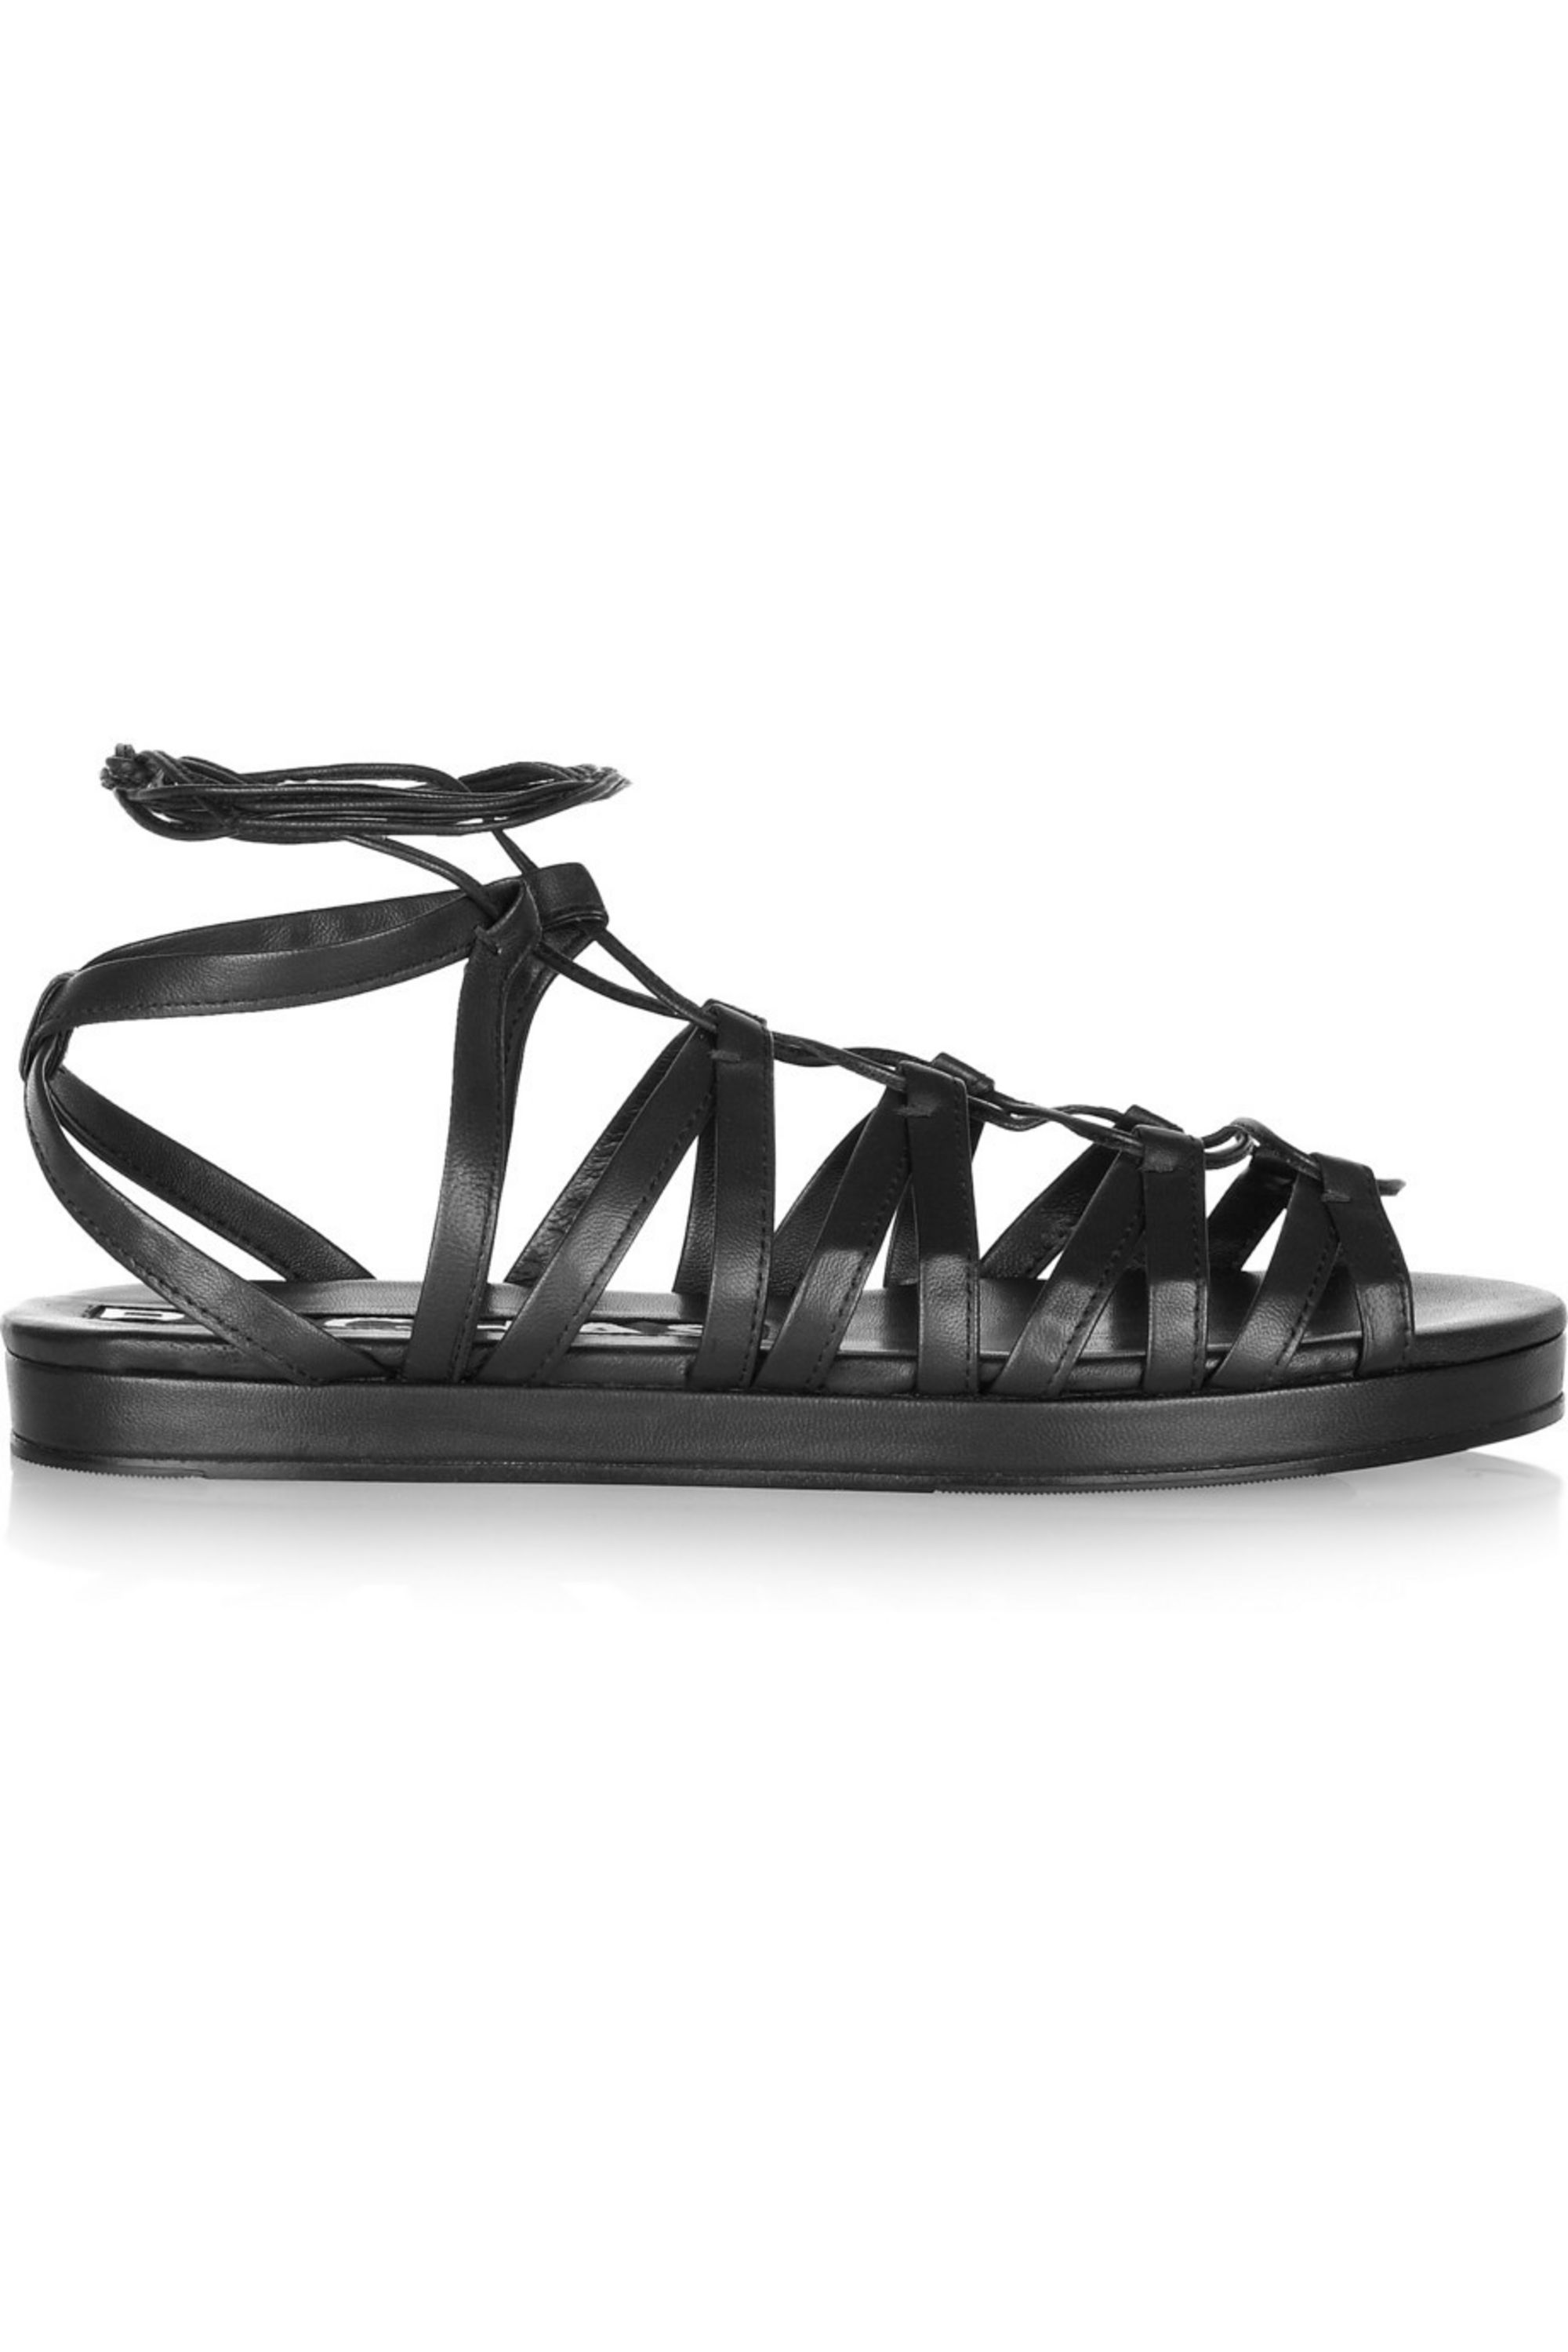 Rochas Leather gladiator sandals